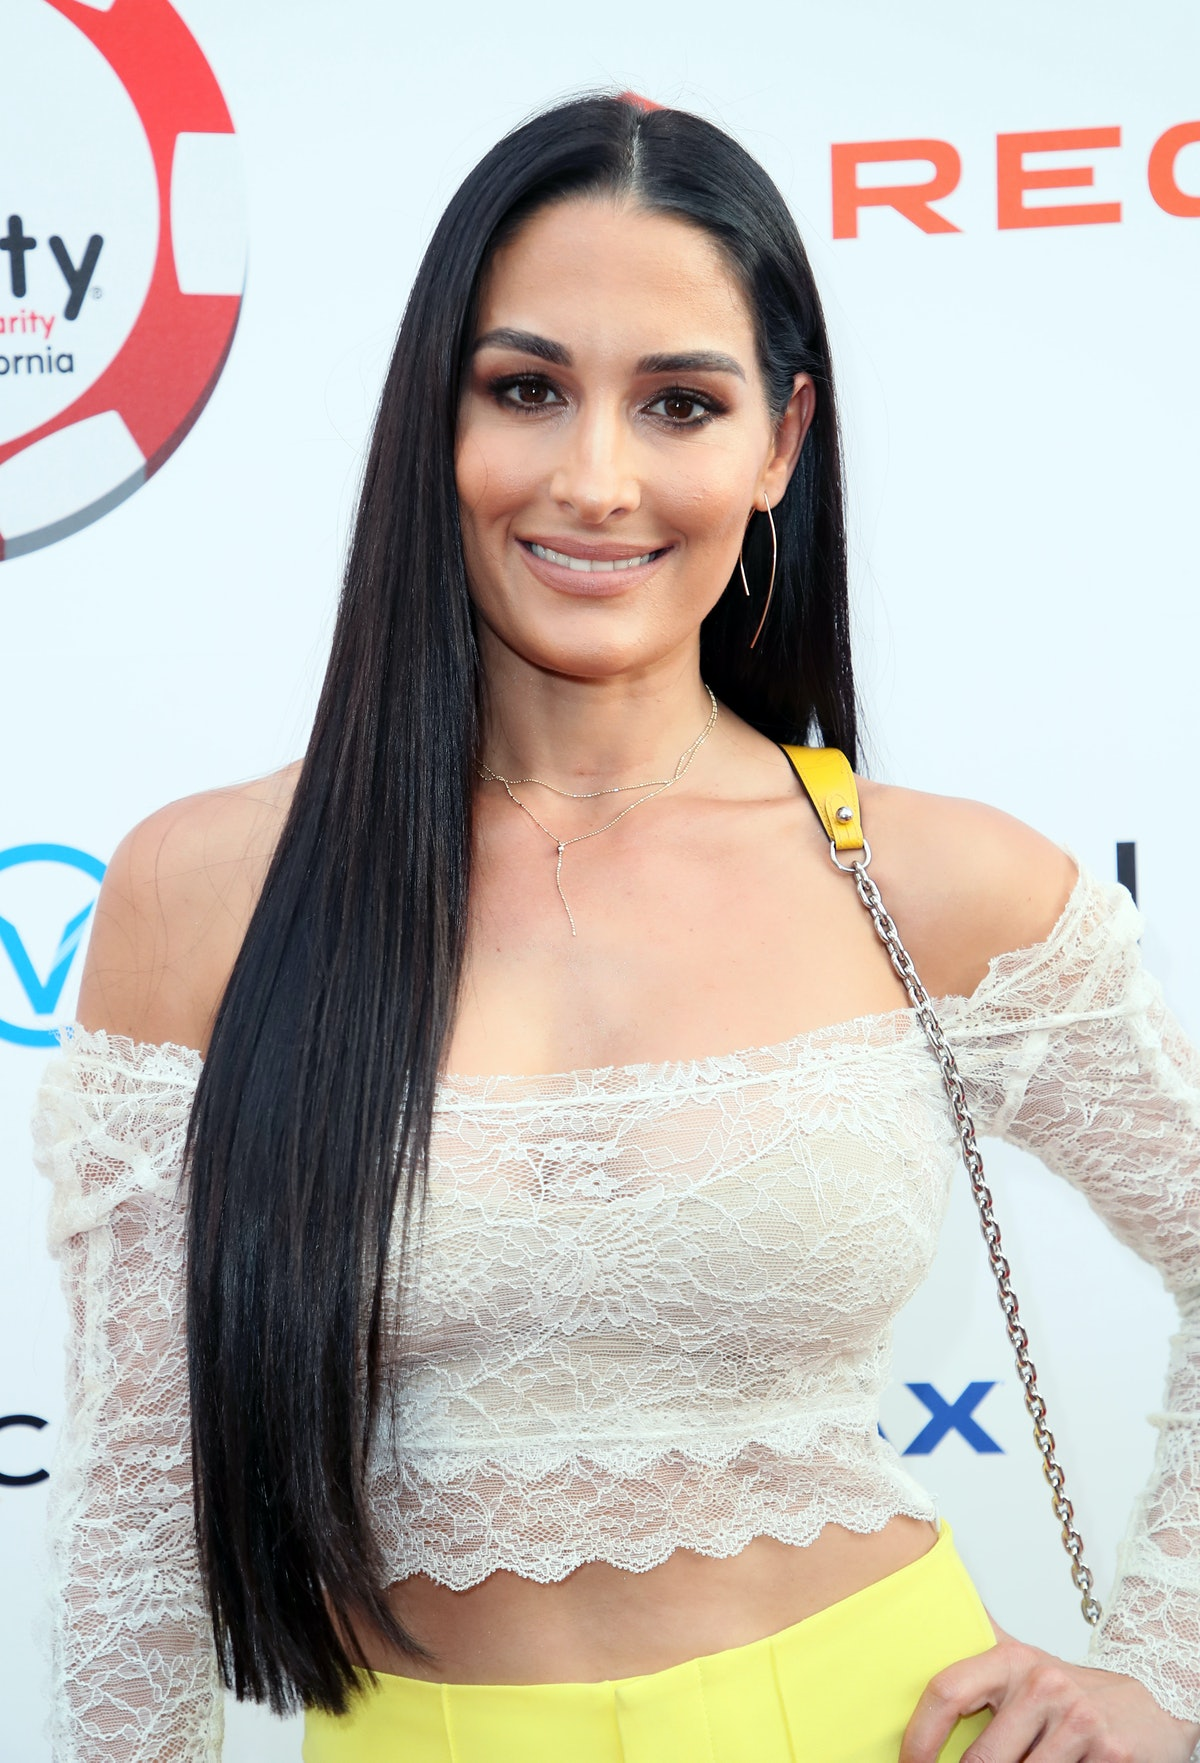 HOLLYWOOD, CALIFORNIA - JULY 24: Nikki Bella attends the 9th Annual Variety - The Children's Charity...